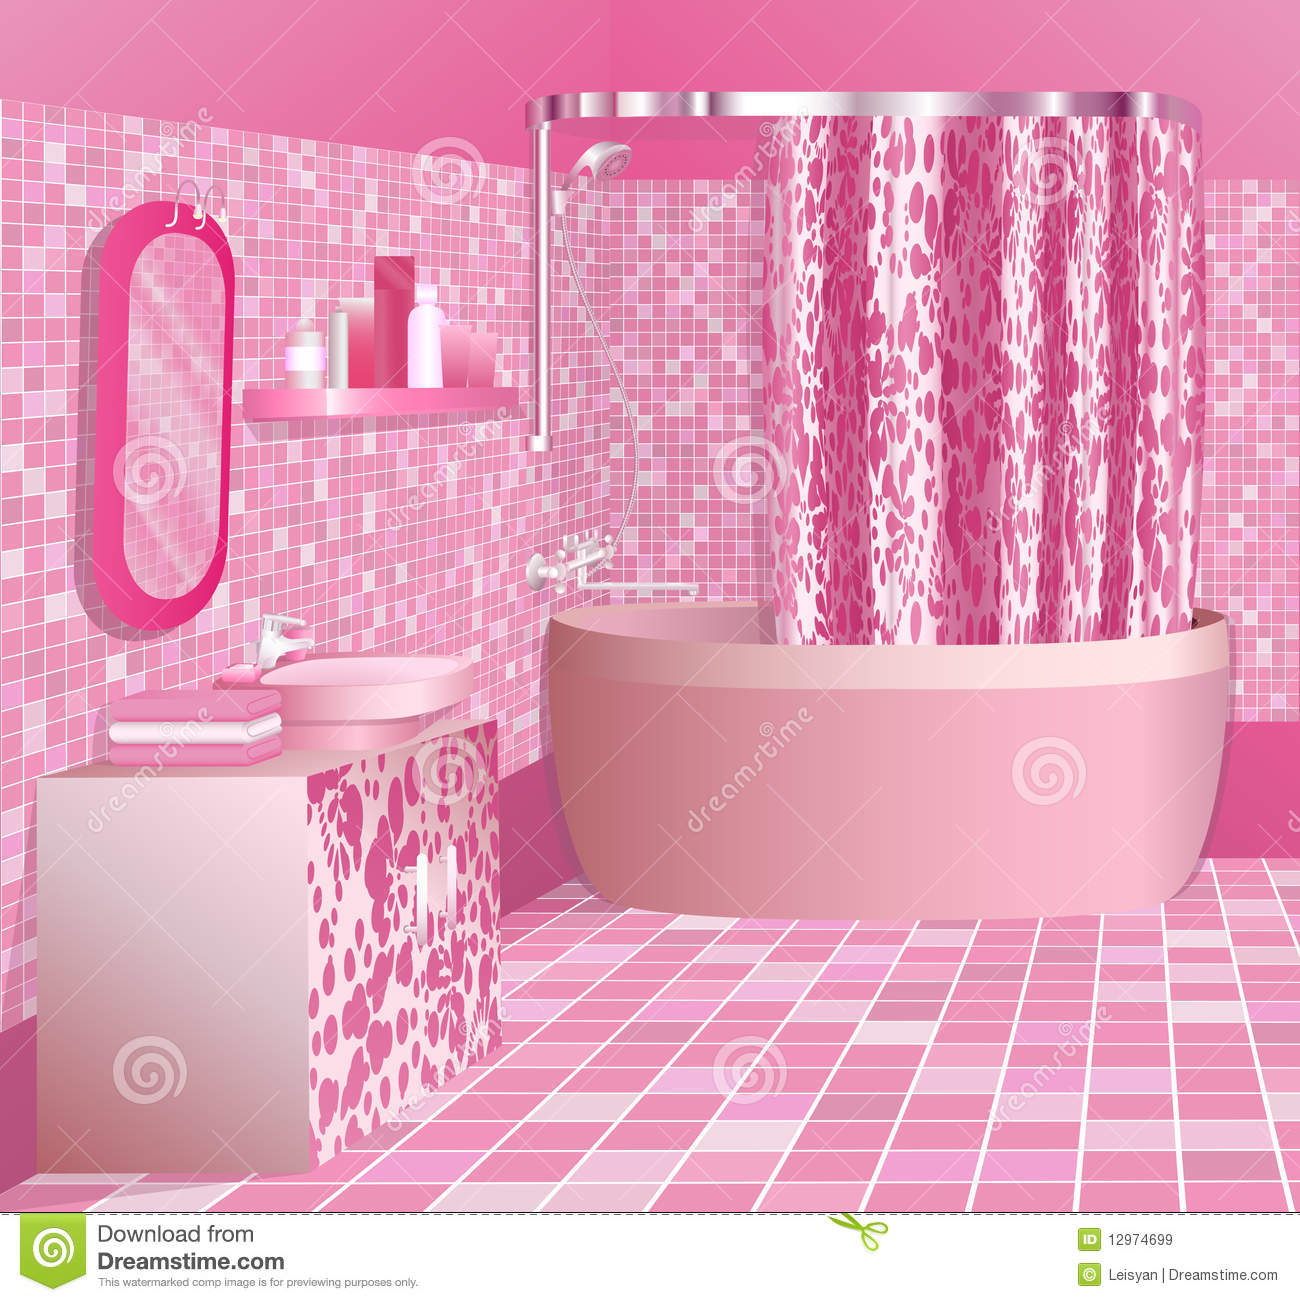 Luxury Pink Bathroom Stock Vector Illustration Of Glamour